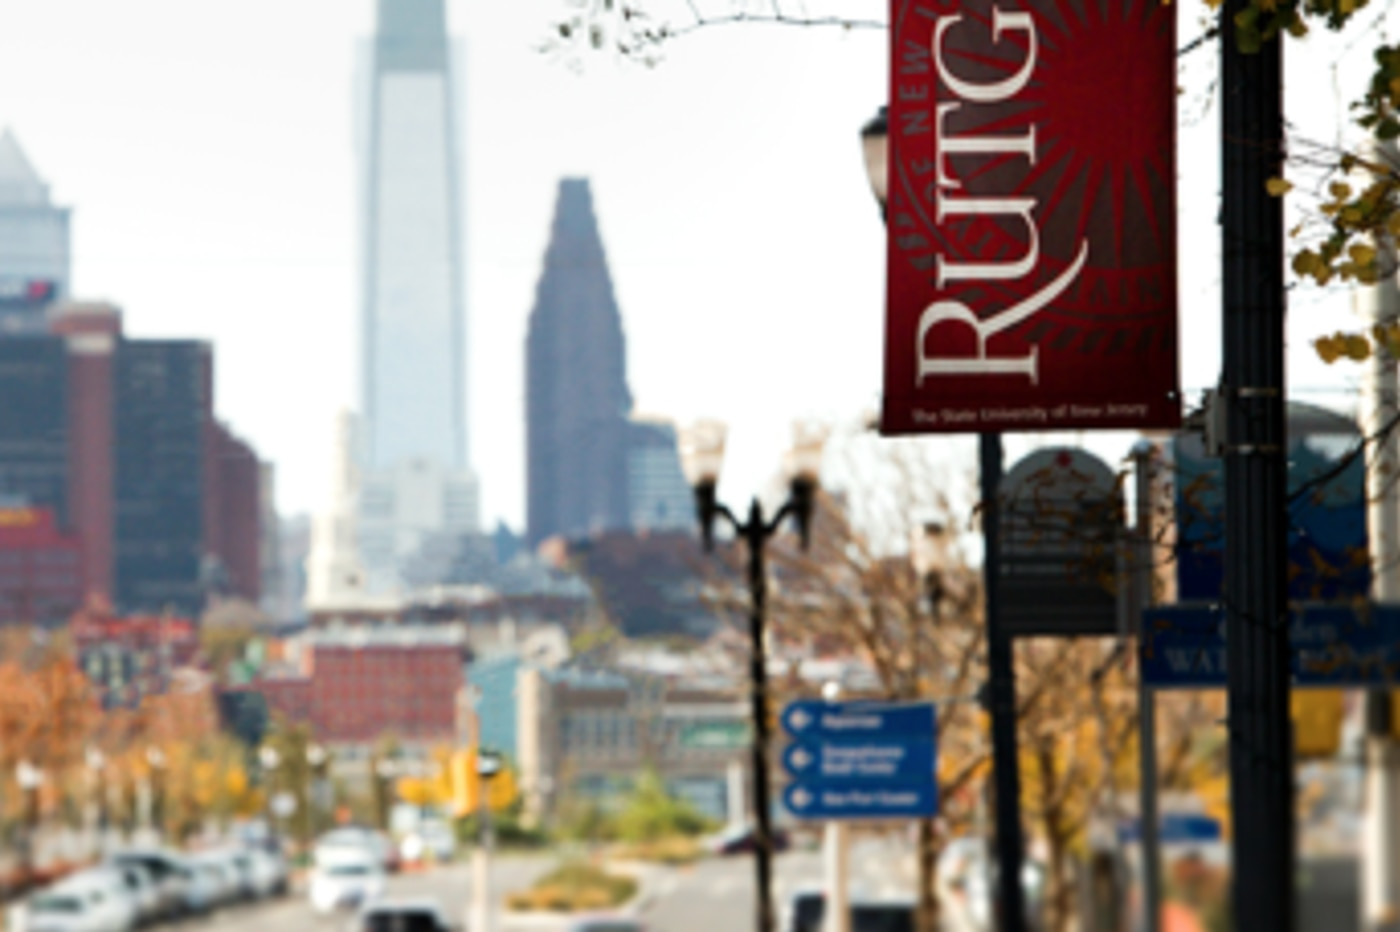 Rutgers to raise minimum wage for student workers to $11